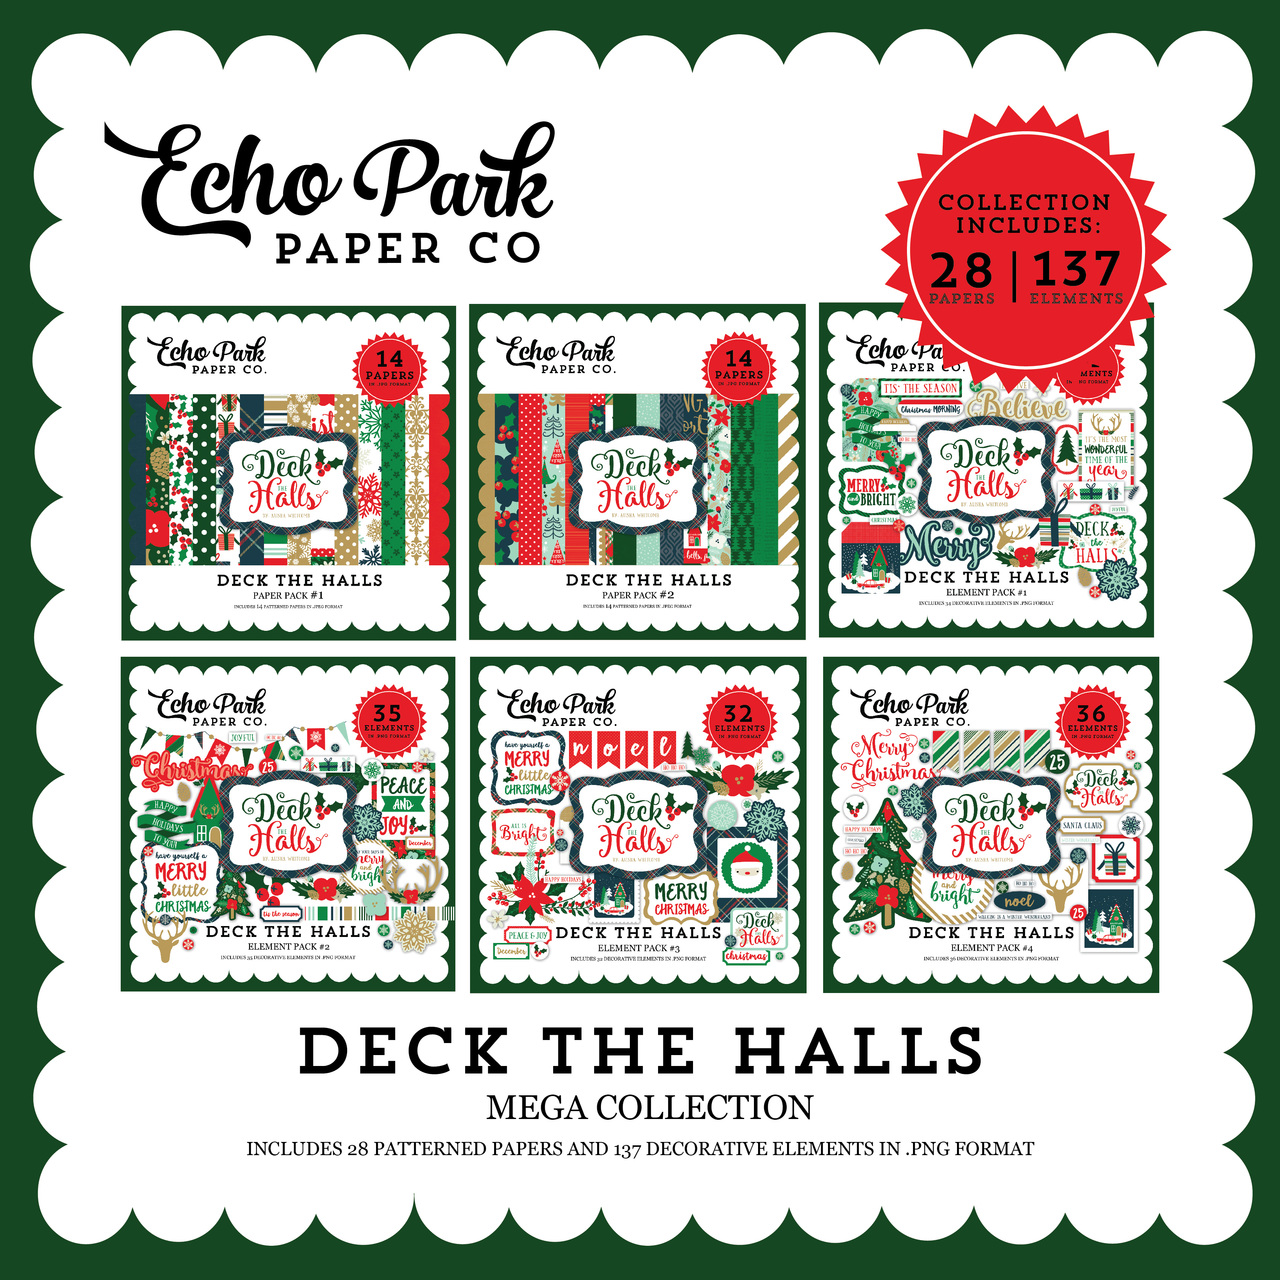 Deck the Halls Mega Collection